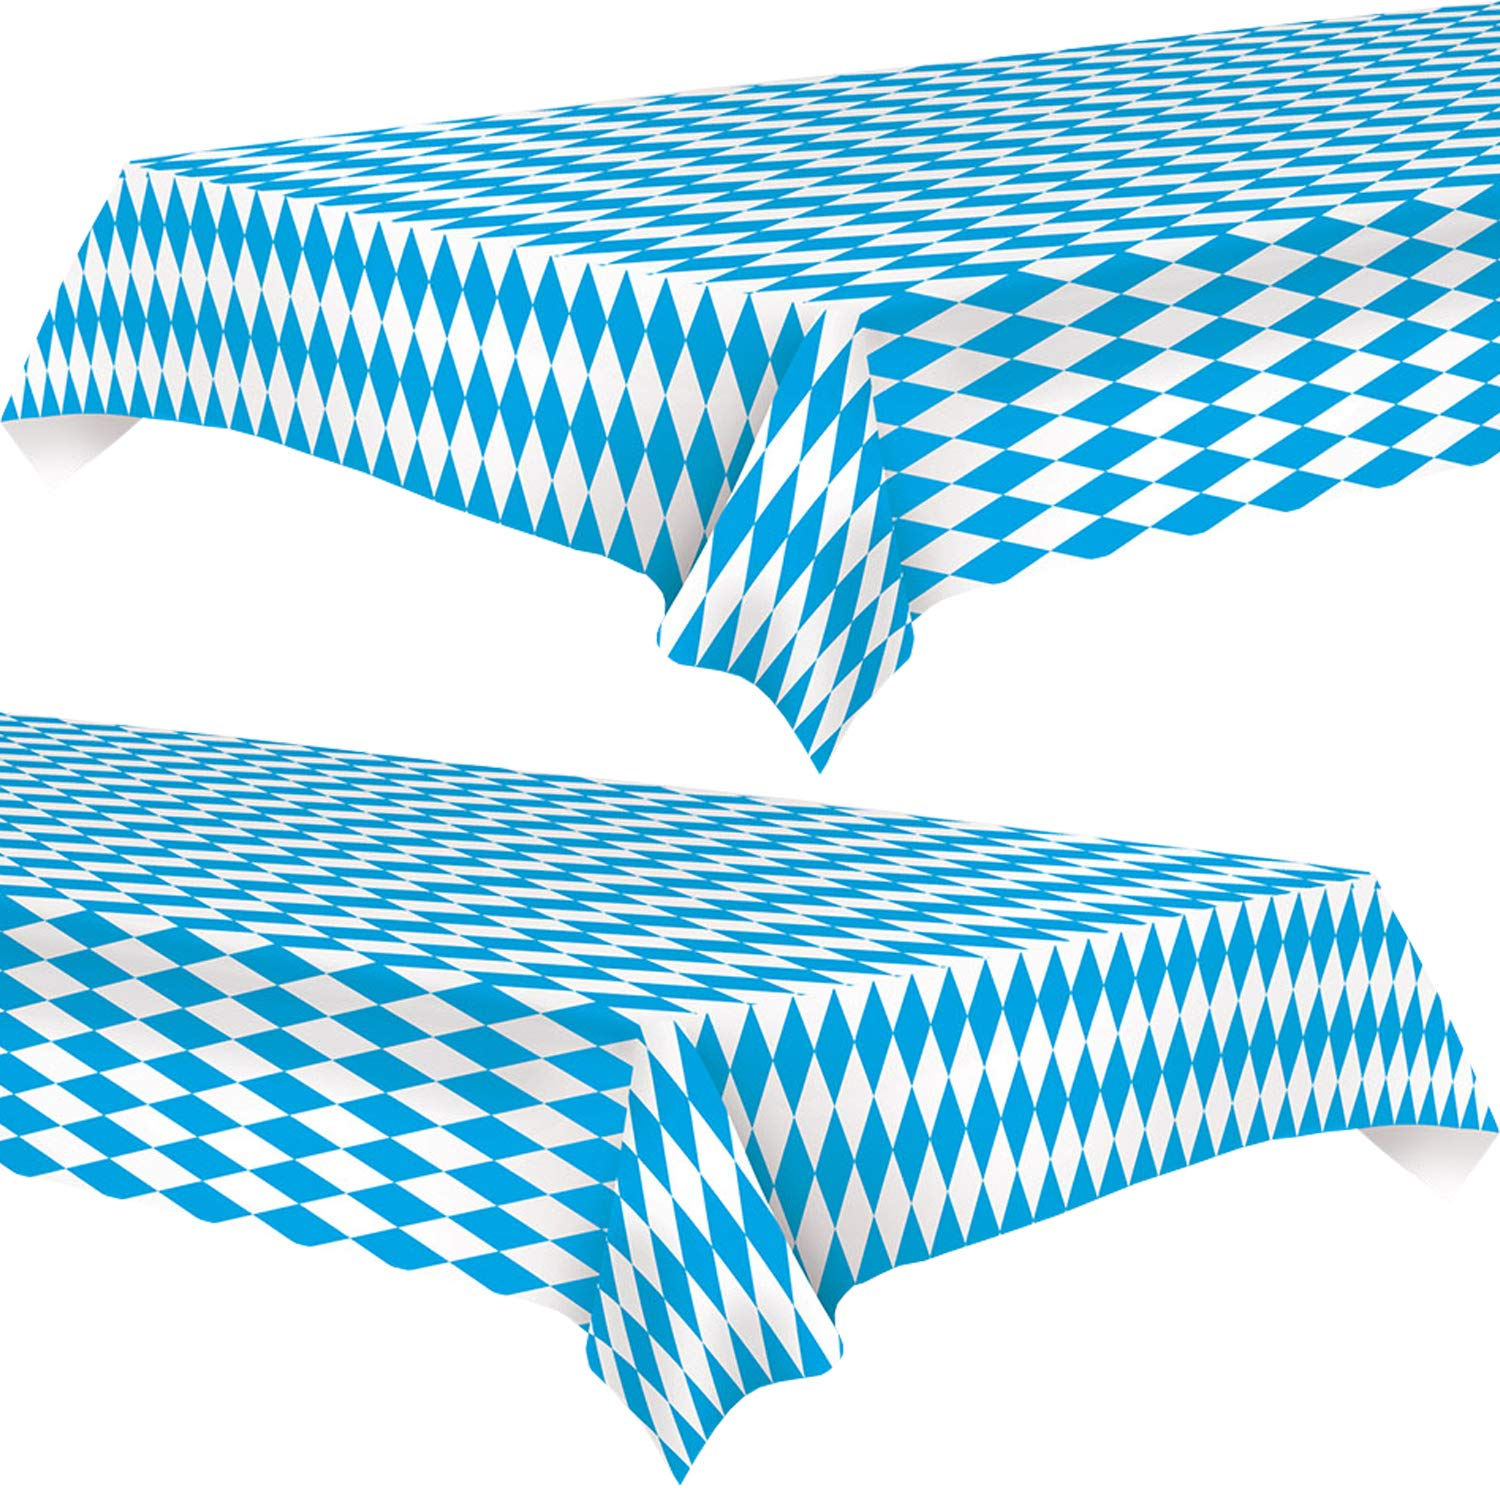 Oktoberfest Party Decoration: Table Cover 54'' x 108'' (2 Pack Plastic tablecloths) by Live It Up! Party Supplies